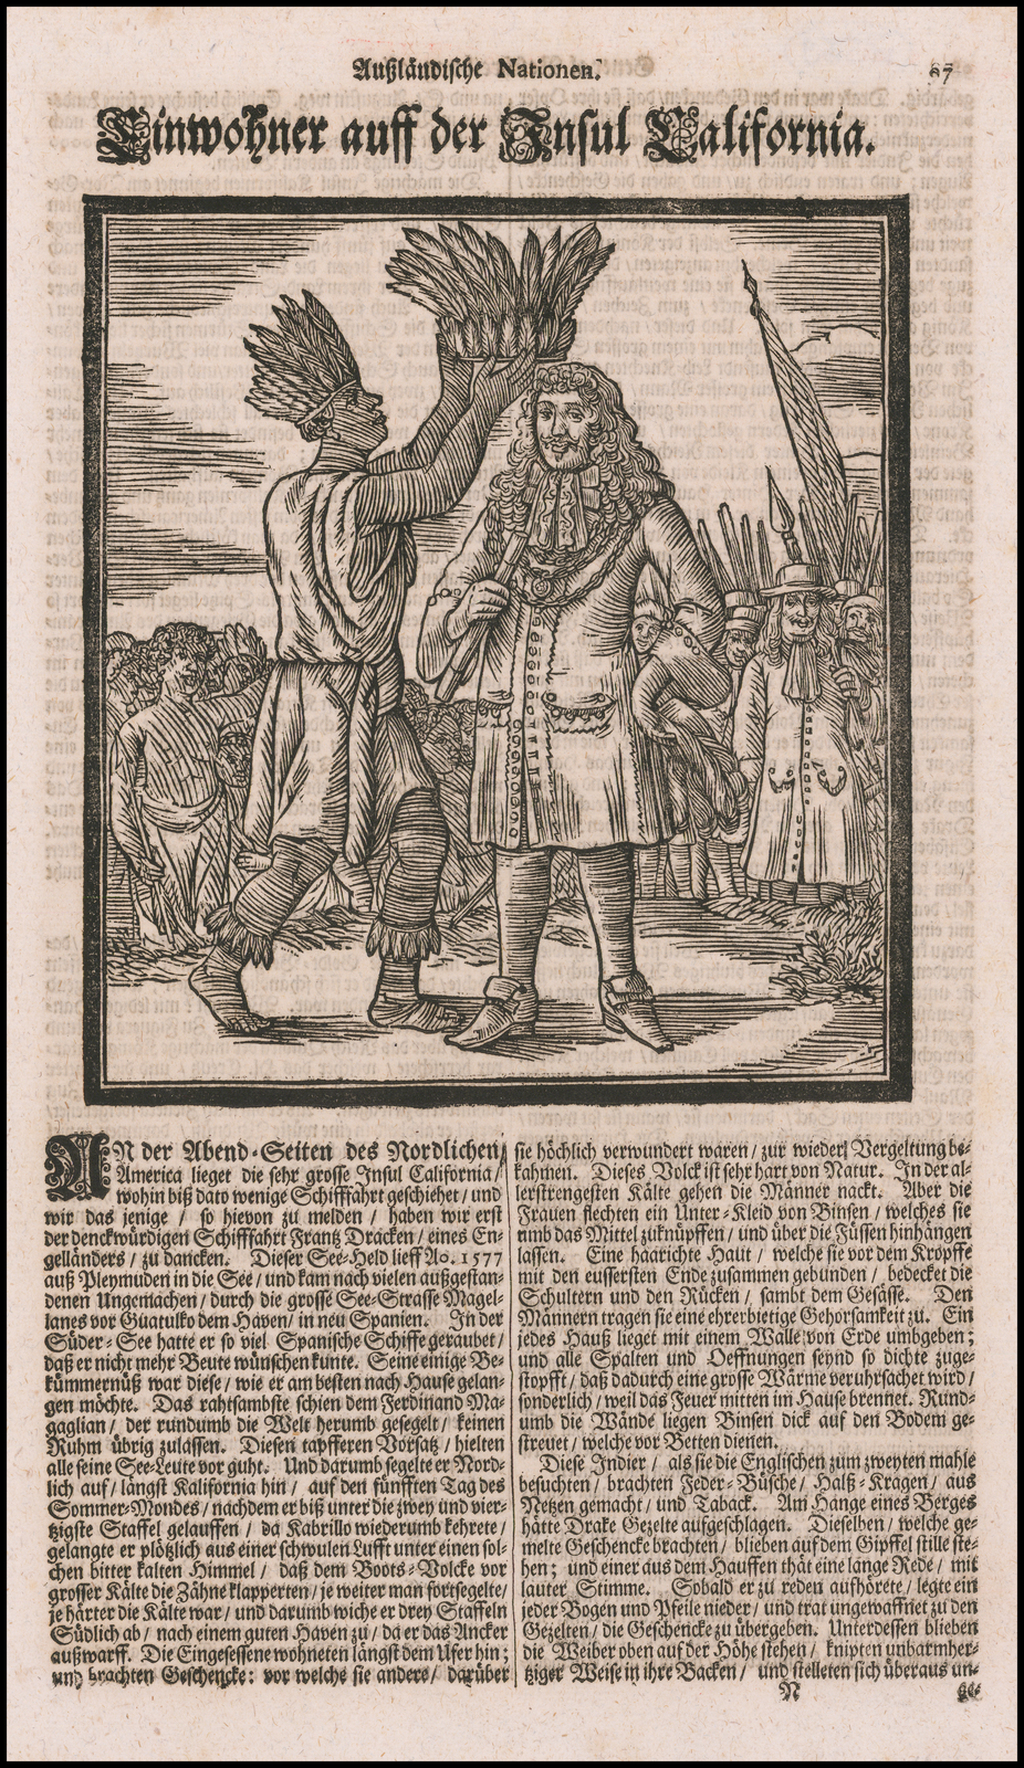 [Sir Francis Drake Honored By The Natives of the Island of California]  Einwohner auff der Insul California By Eberhard Werner  Happel